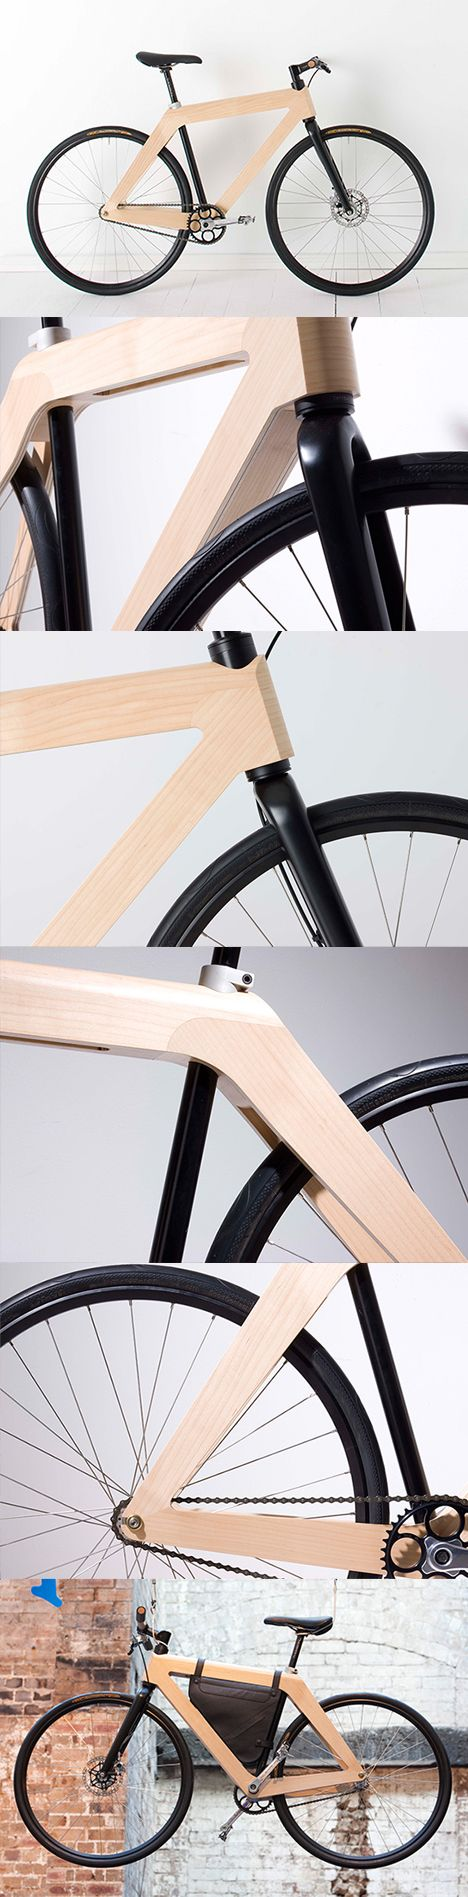 carbon fiber wood bike  - Repinned by ZC Woodwork